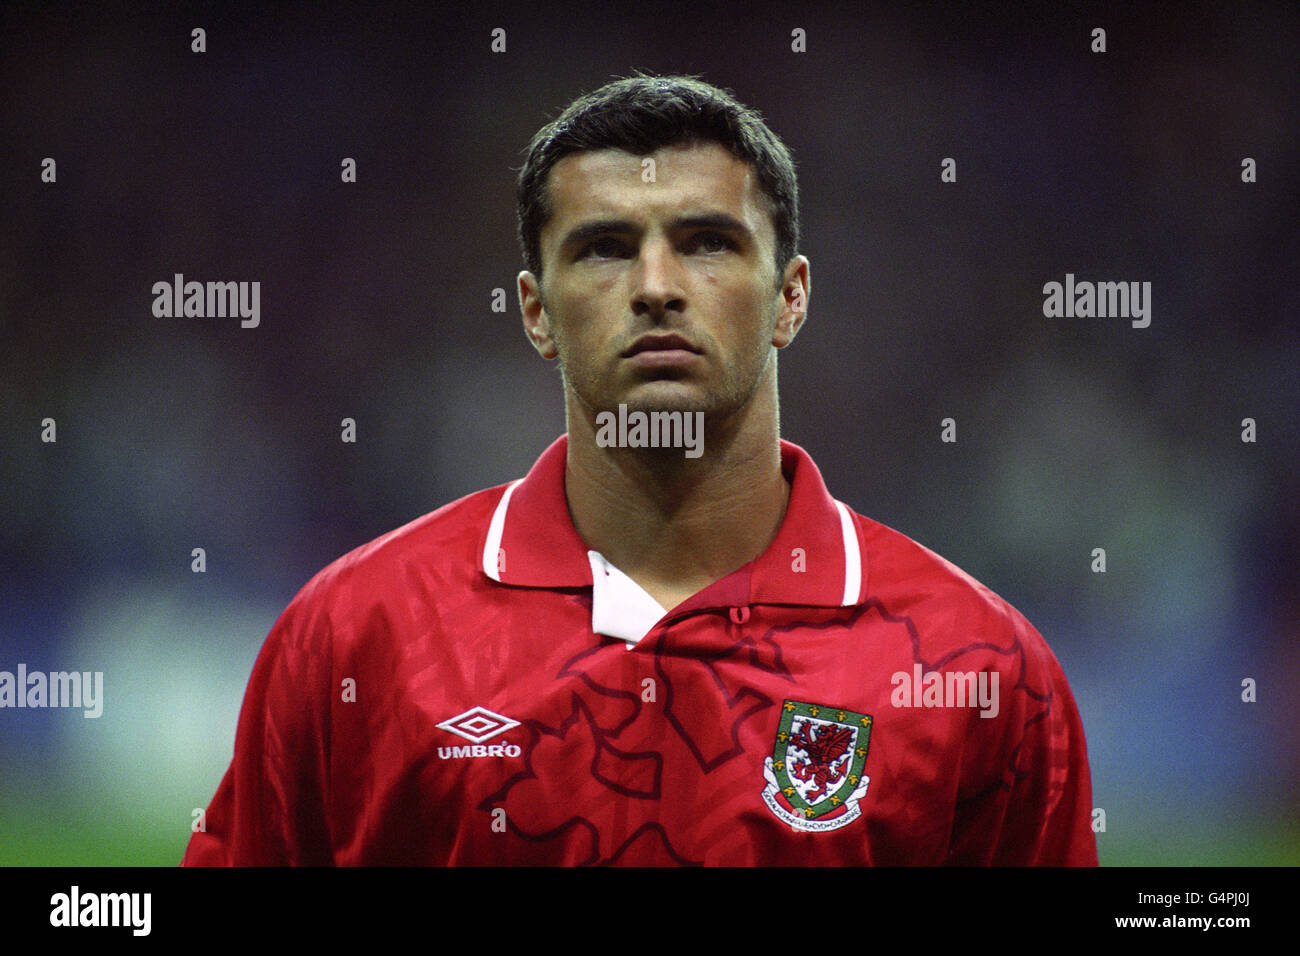 Soccer - International Soccer - Wales - Stock Image